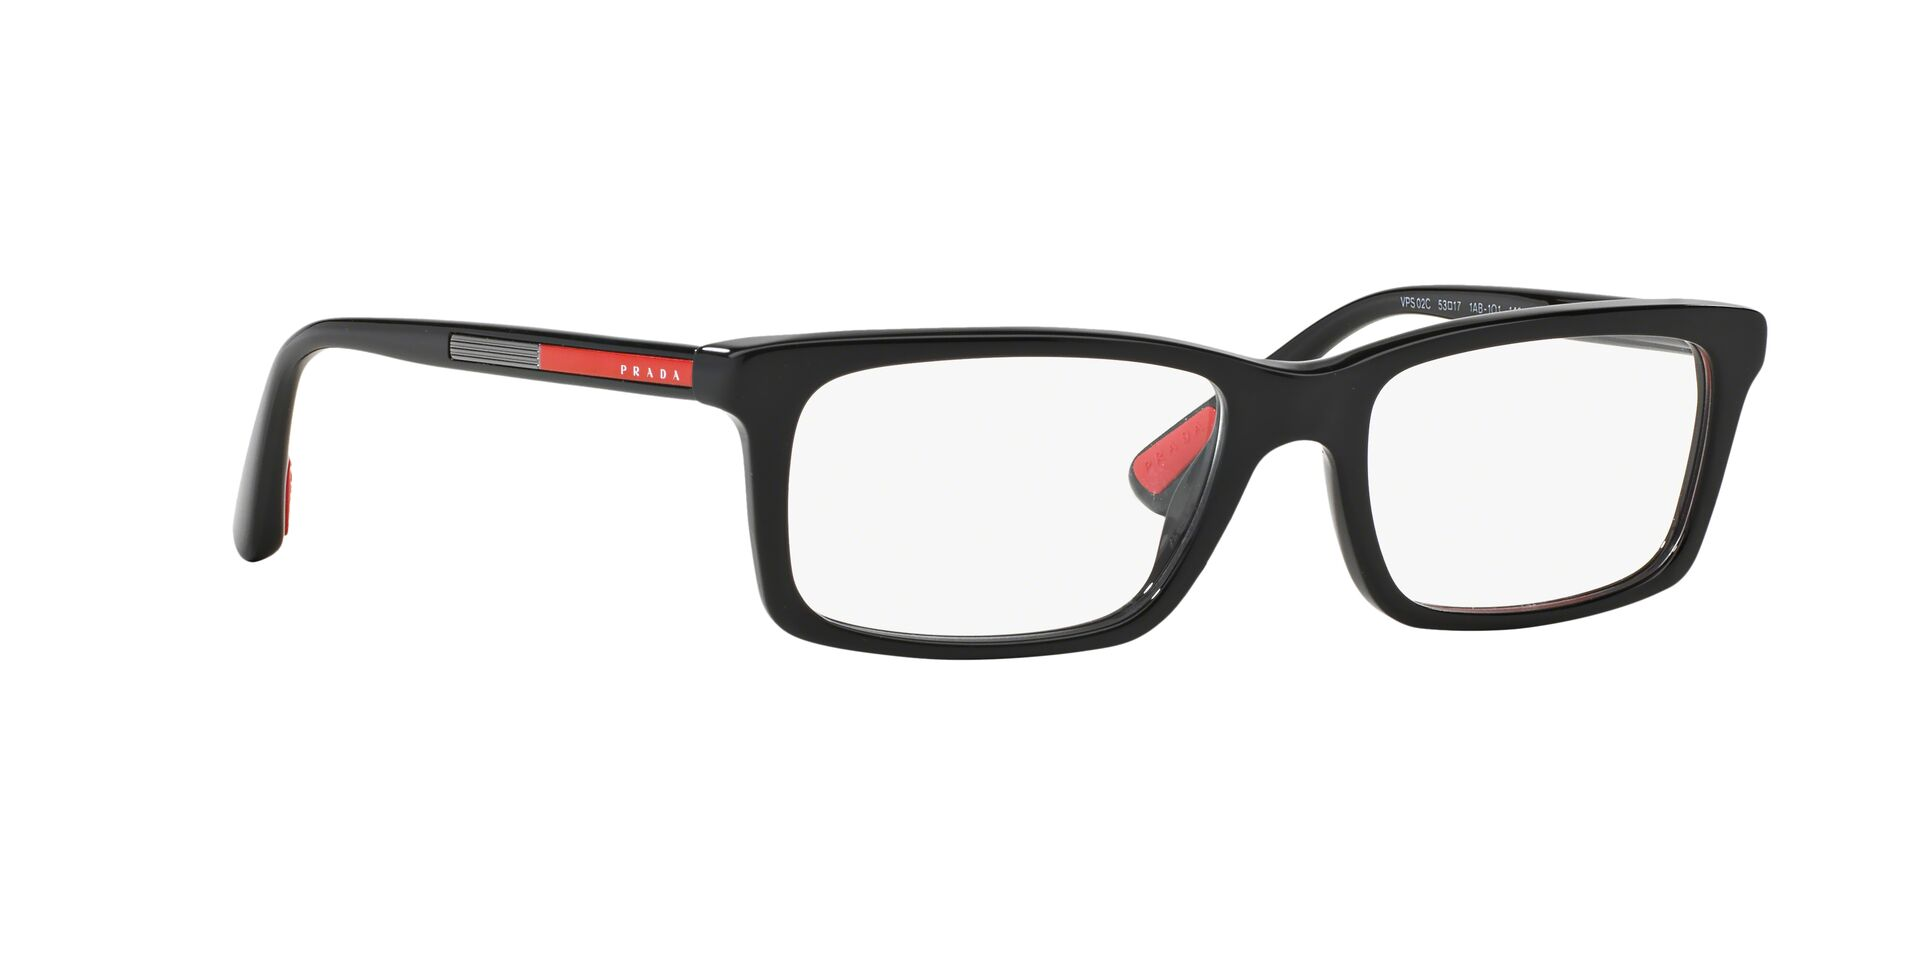 Prada Sport - PS02CV Black Rectangular Men Eyeglasses - 55mm-Eyeglasses-Designer Eyes